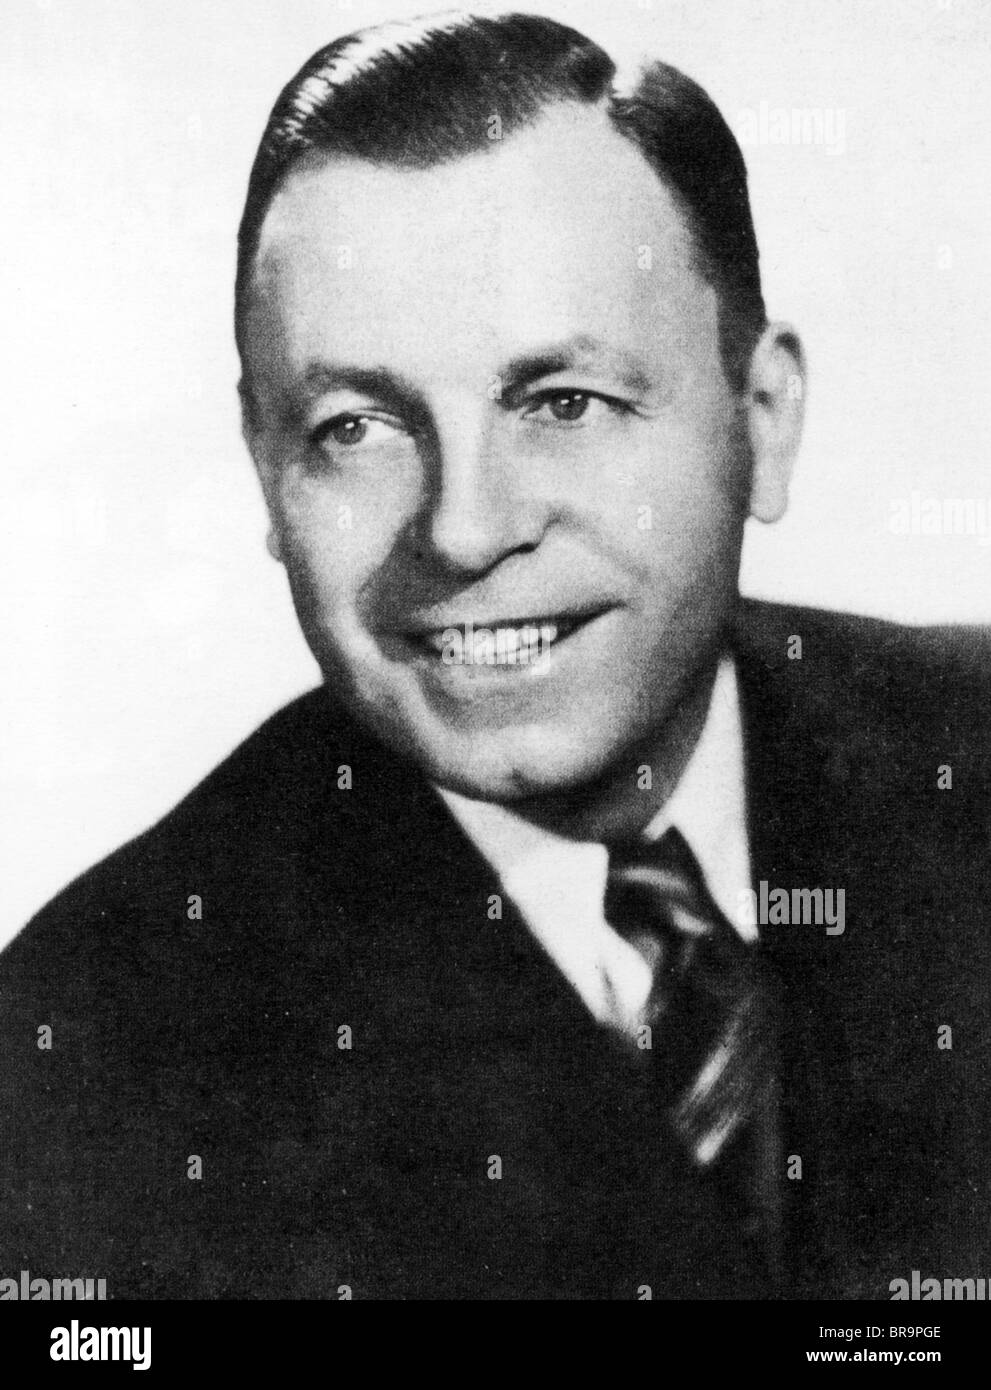 JIMMIE DAVIS - US Country musician and politician (1899-2000) - Stock Image